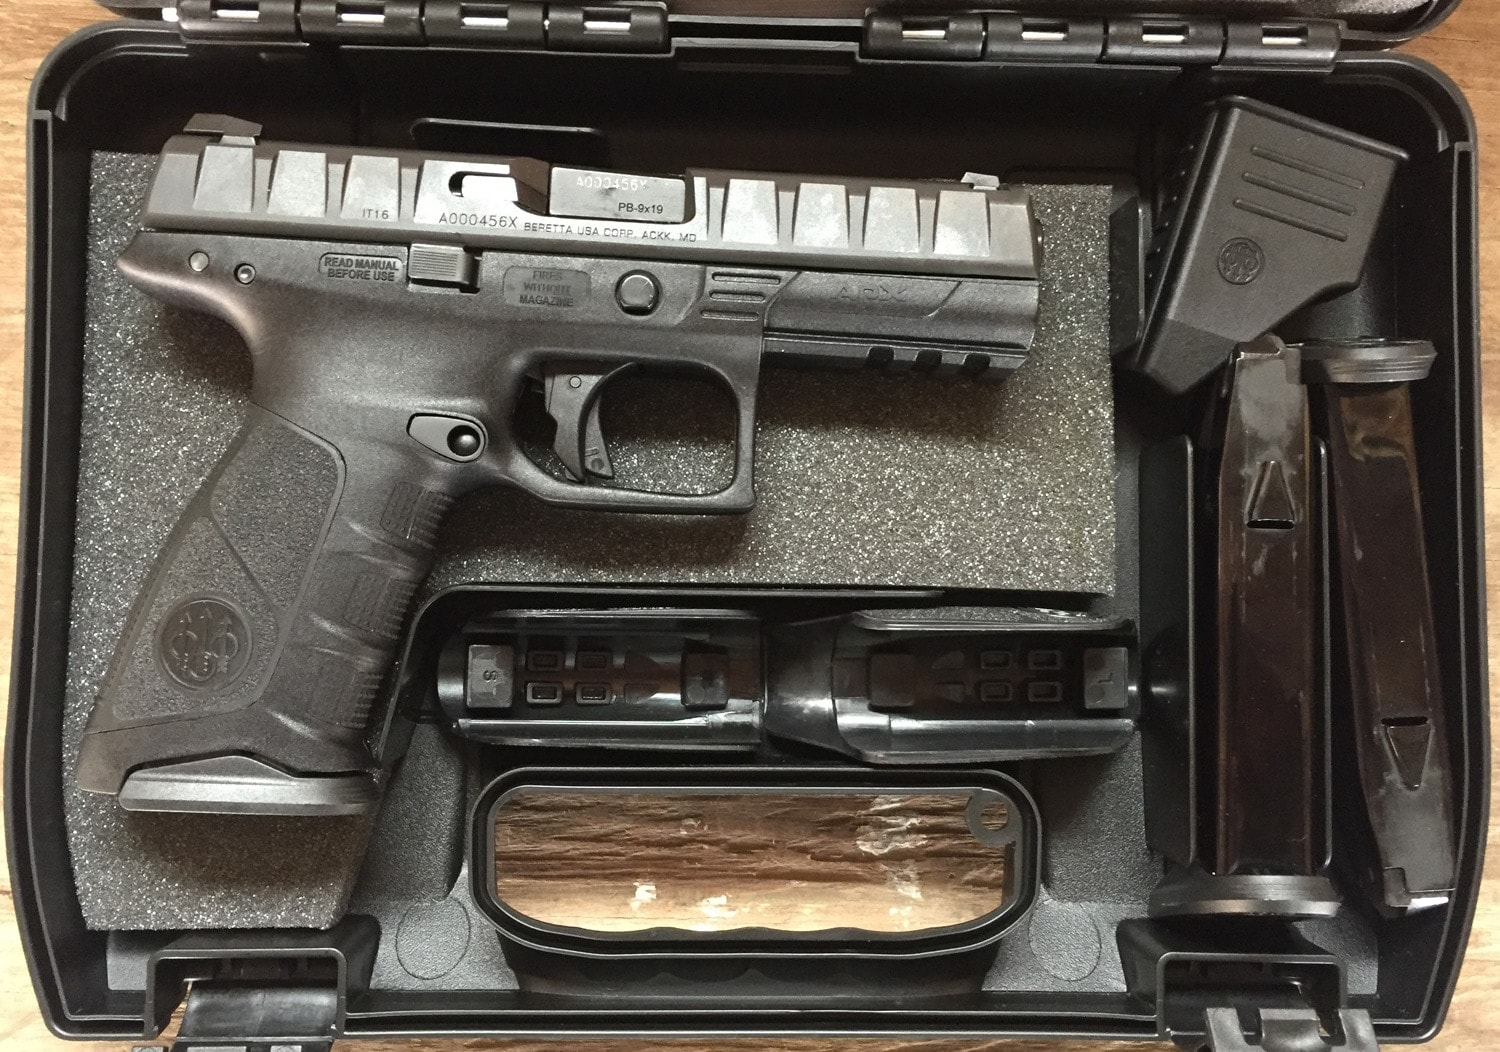 Off the shelf, the APX comes with two 17-round magazines, two interchangeable grips and a mag loader. (Photo: Daniel Terrill/Guns.com)